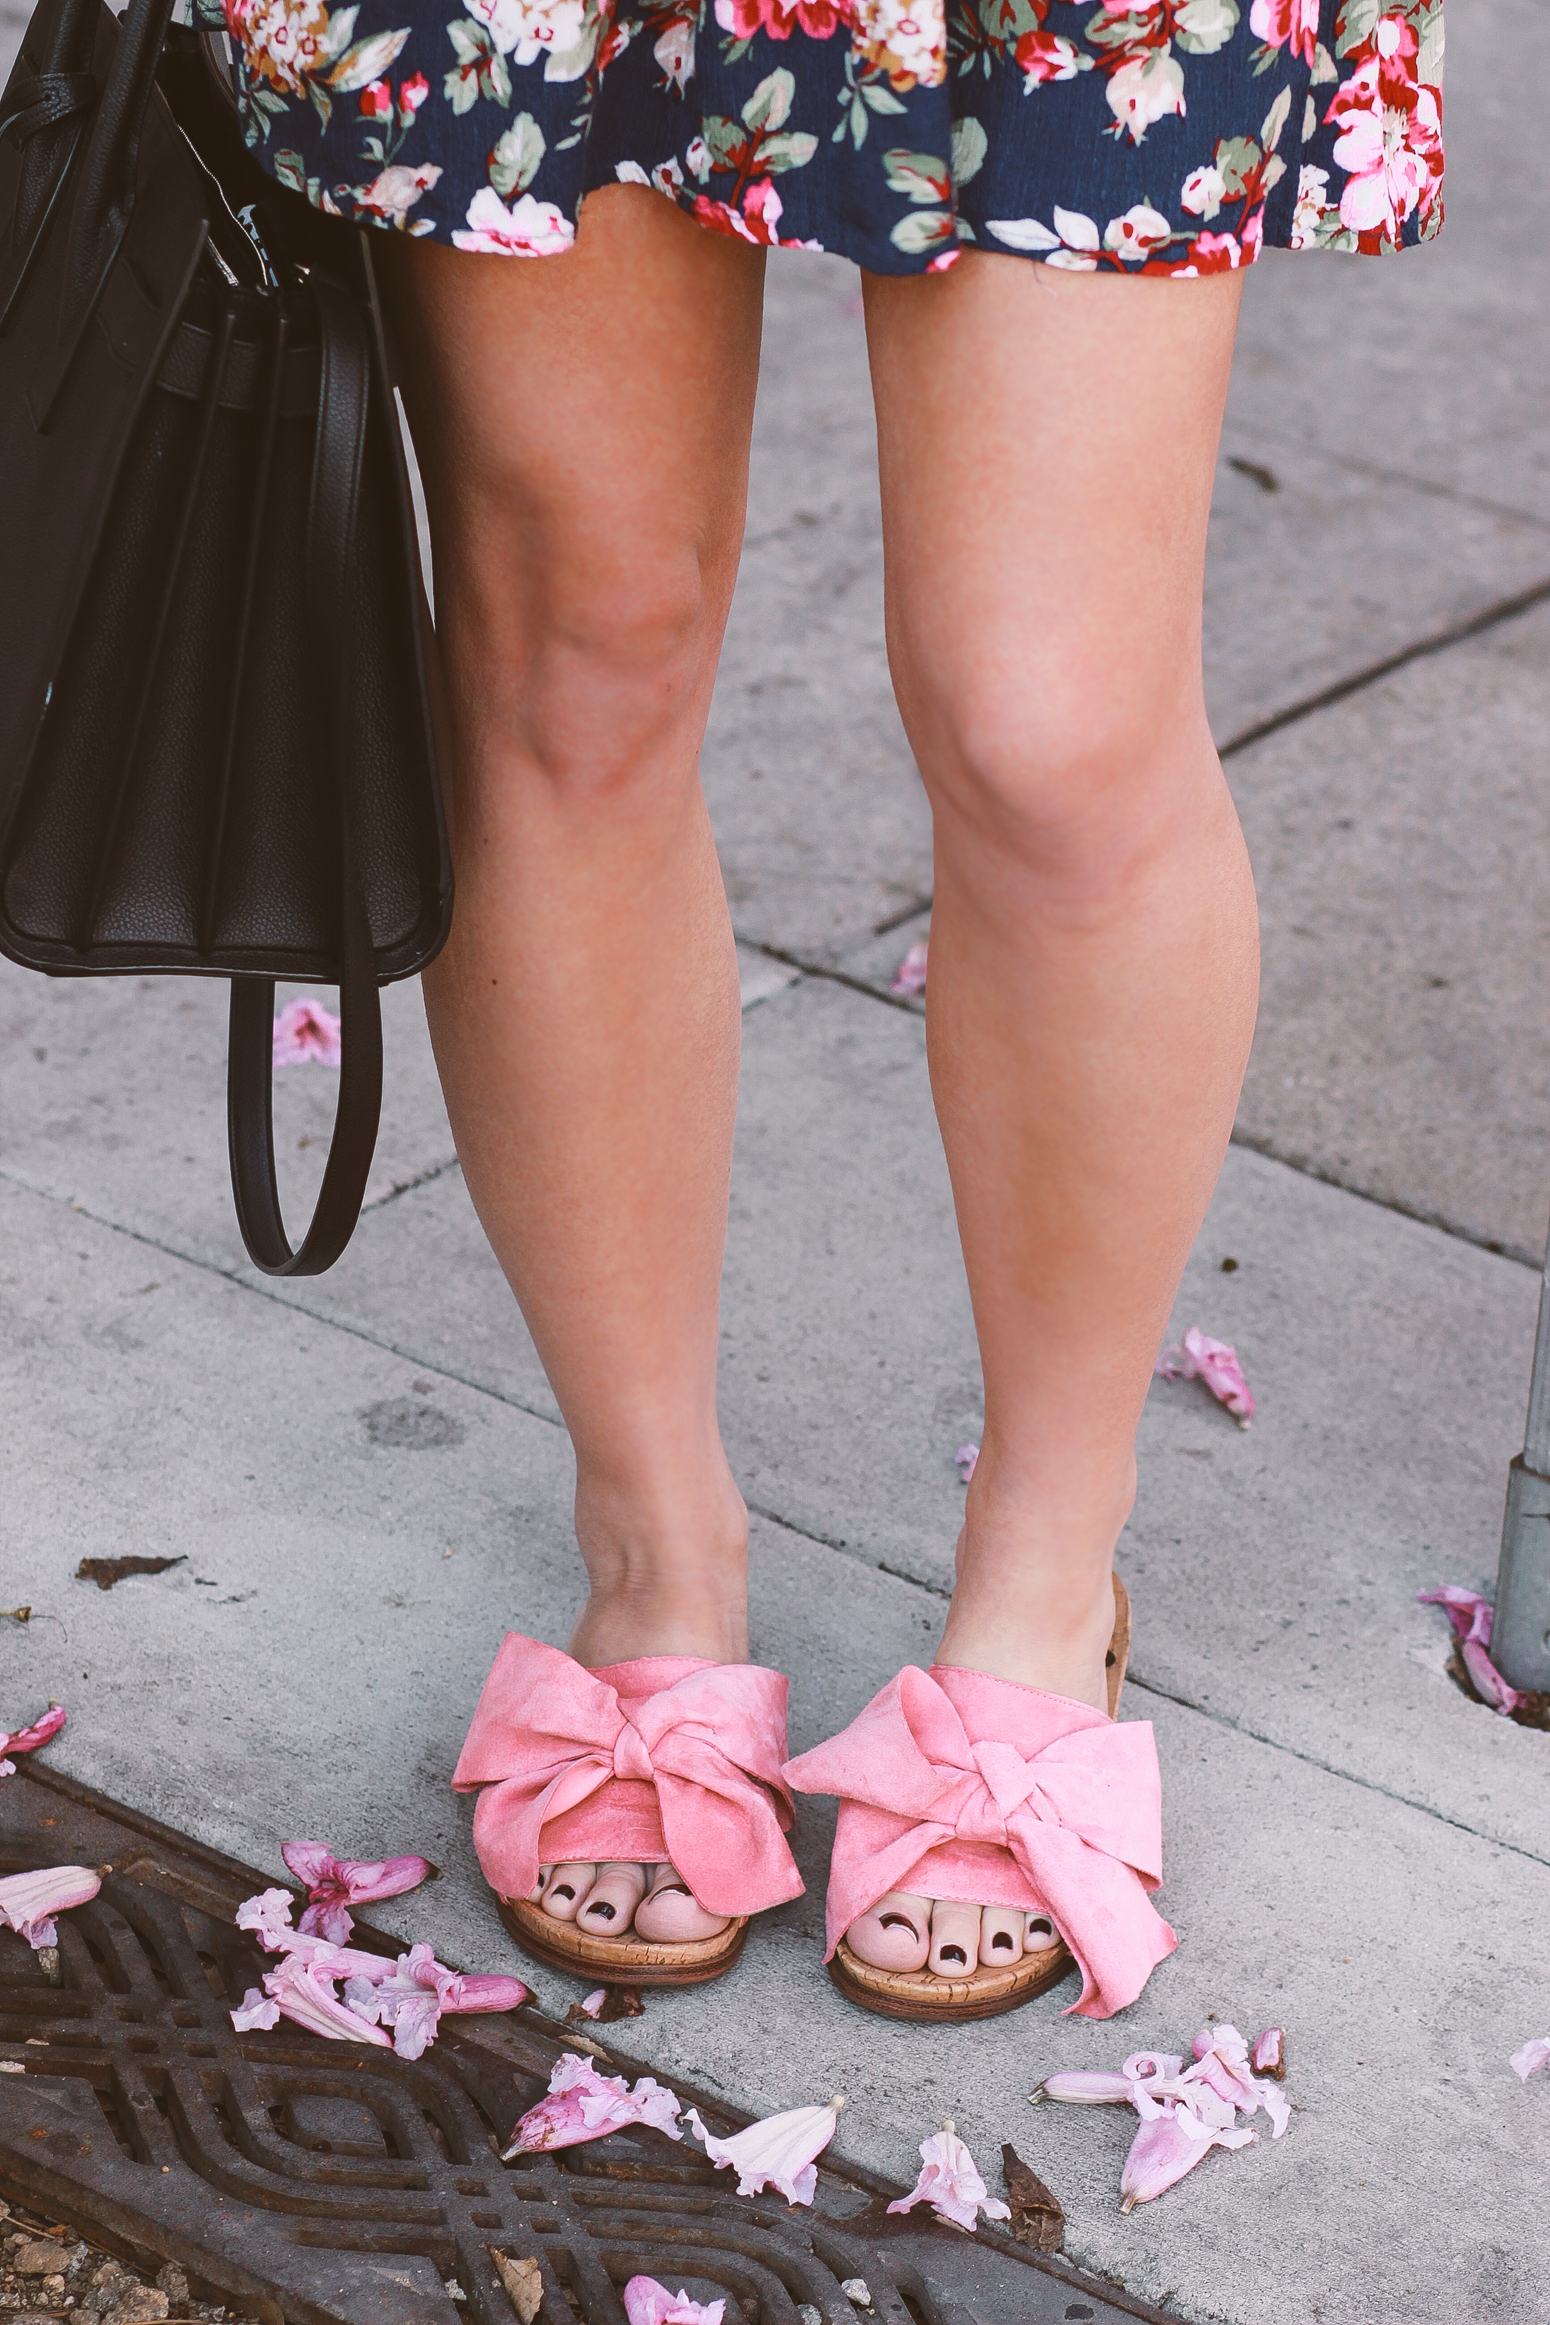 Blondie in the City | Floral Spring Dress | Sam Edelman Sandals |Pink Bow Shoes | YSL Bag